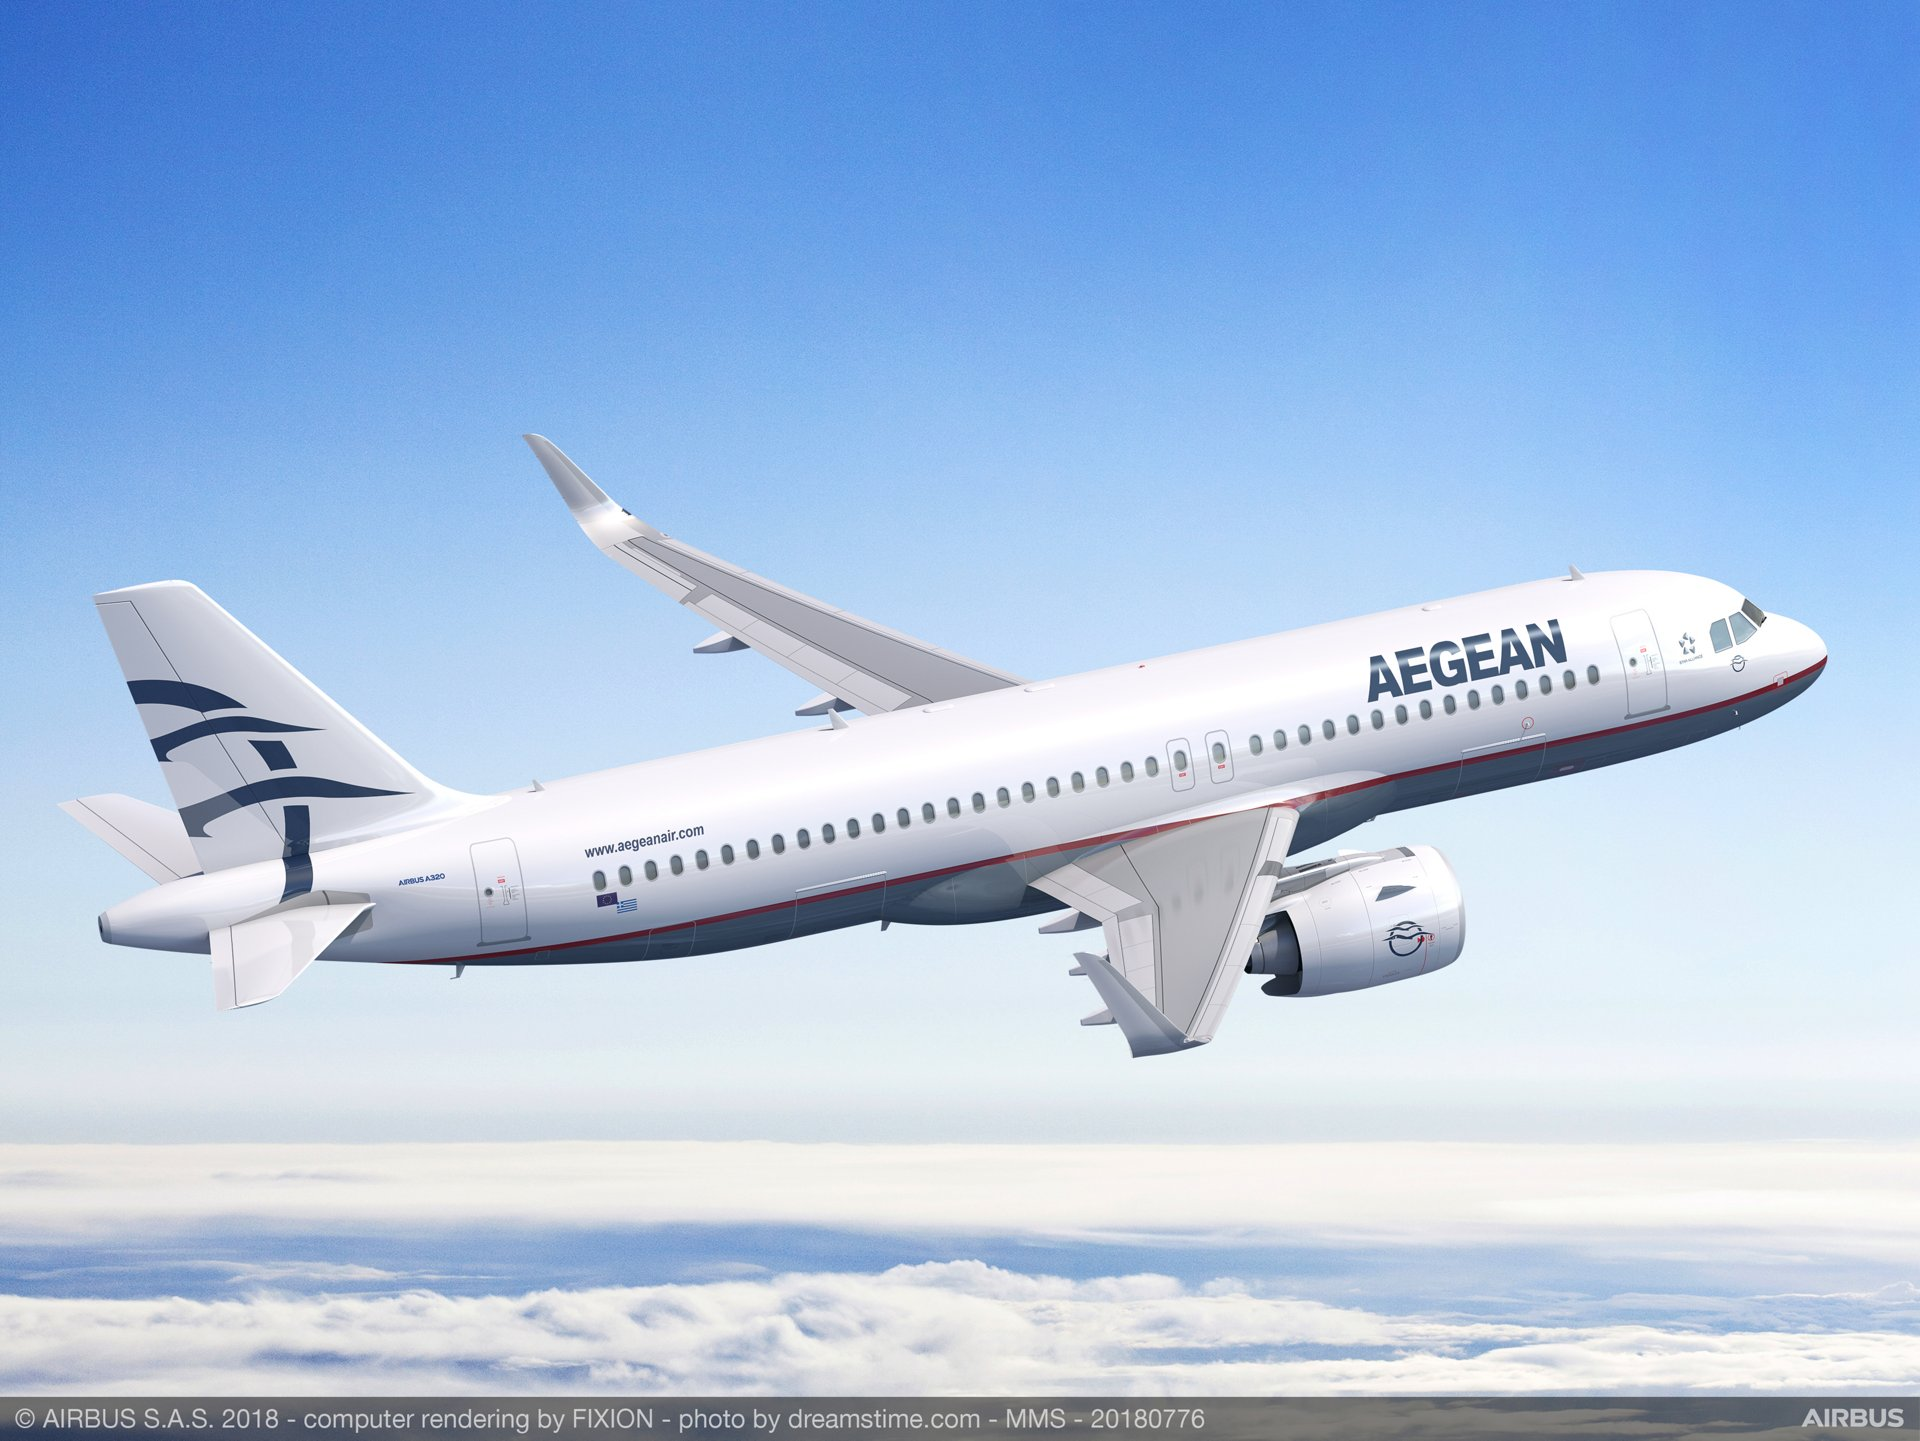 Aegean commits to 30 A320neo Family aircraft - Commercial